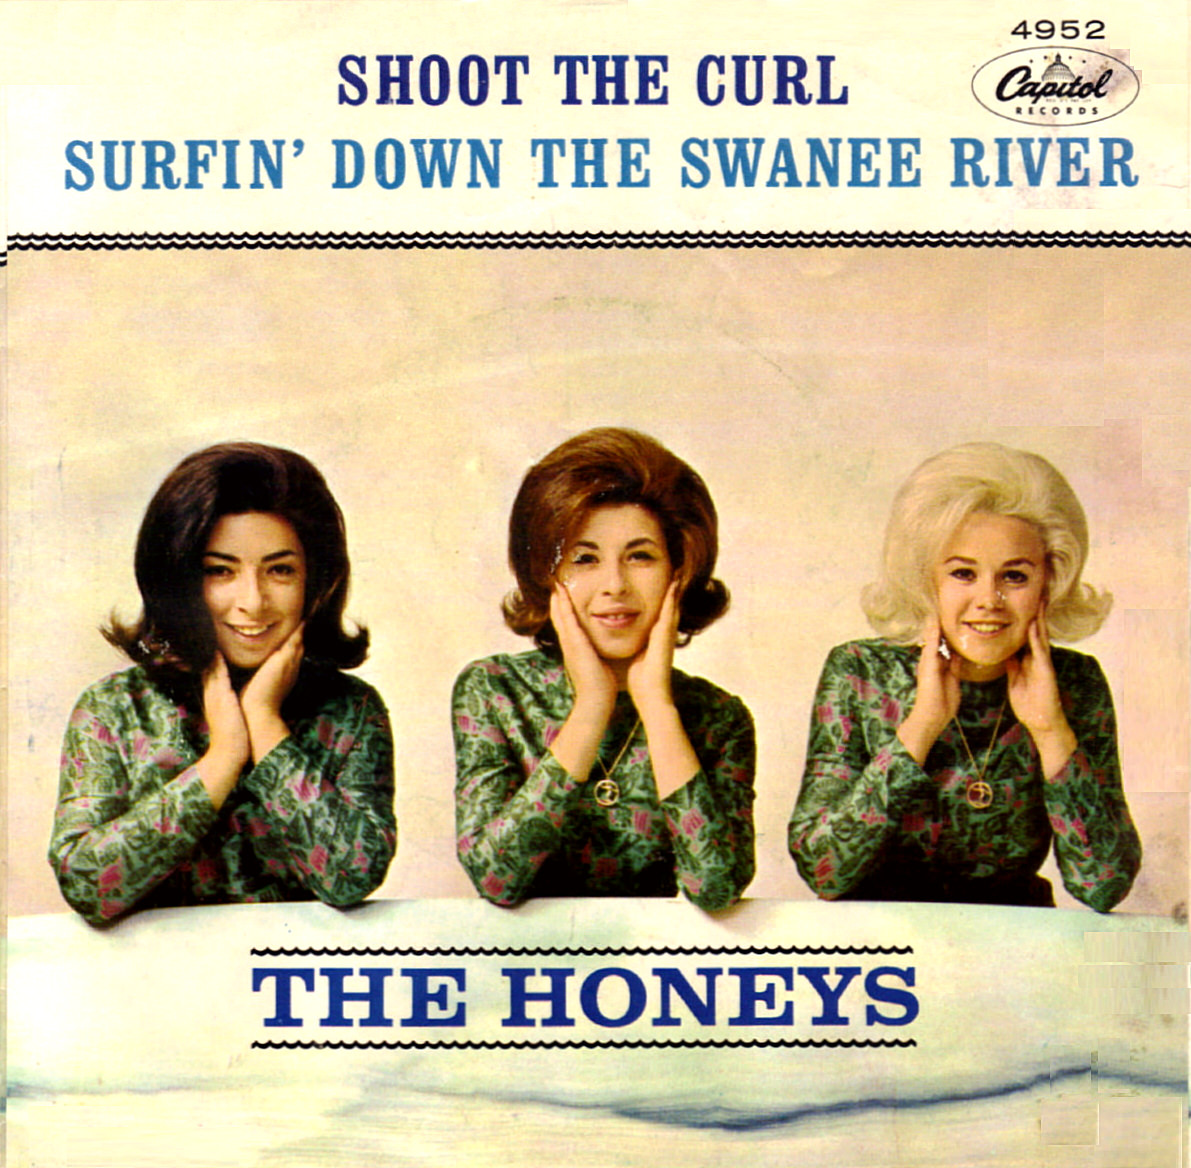 Shoot The Curl/Surfin' Down The Swanee River cover